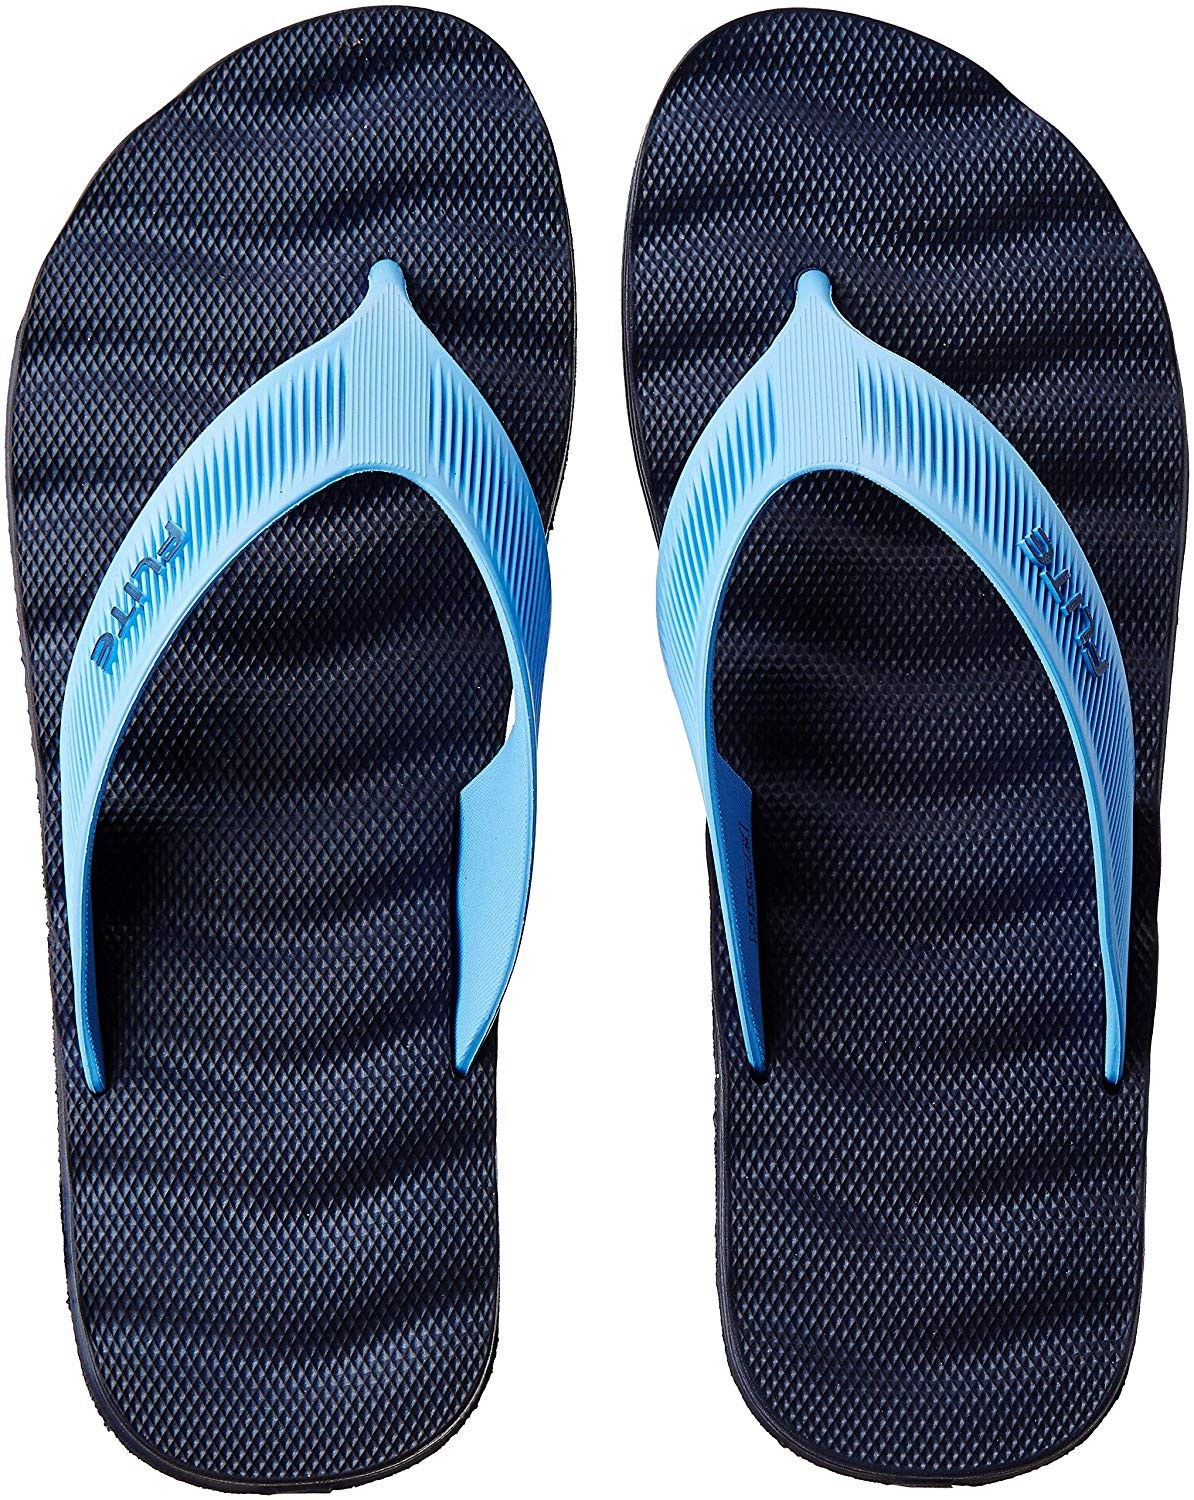 Pin On Best Leather Shoes India